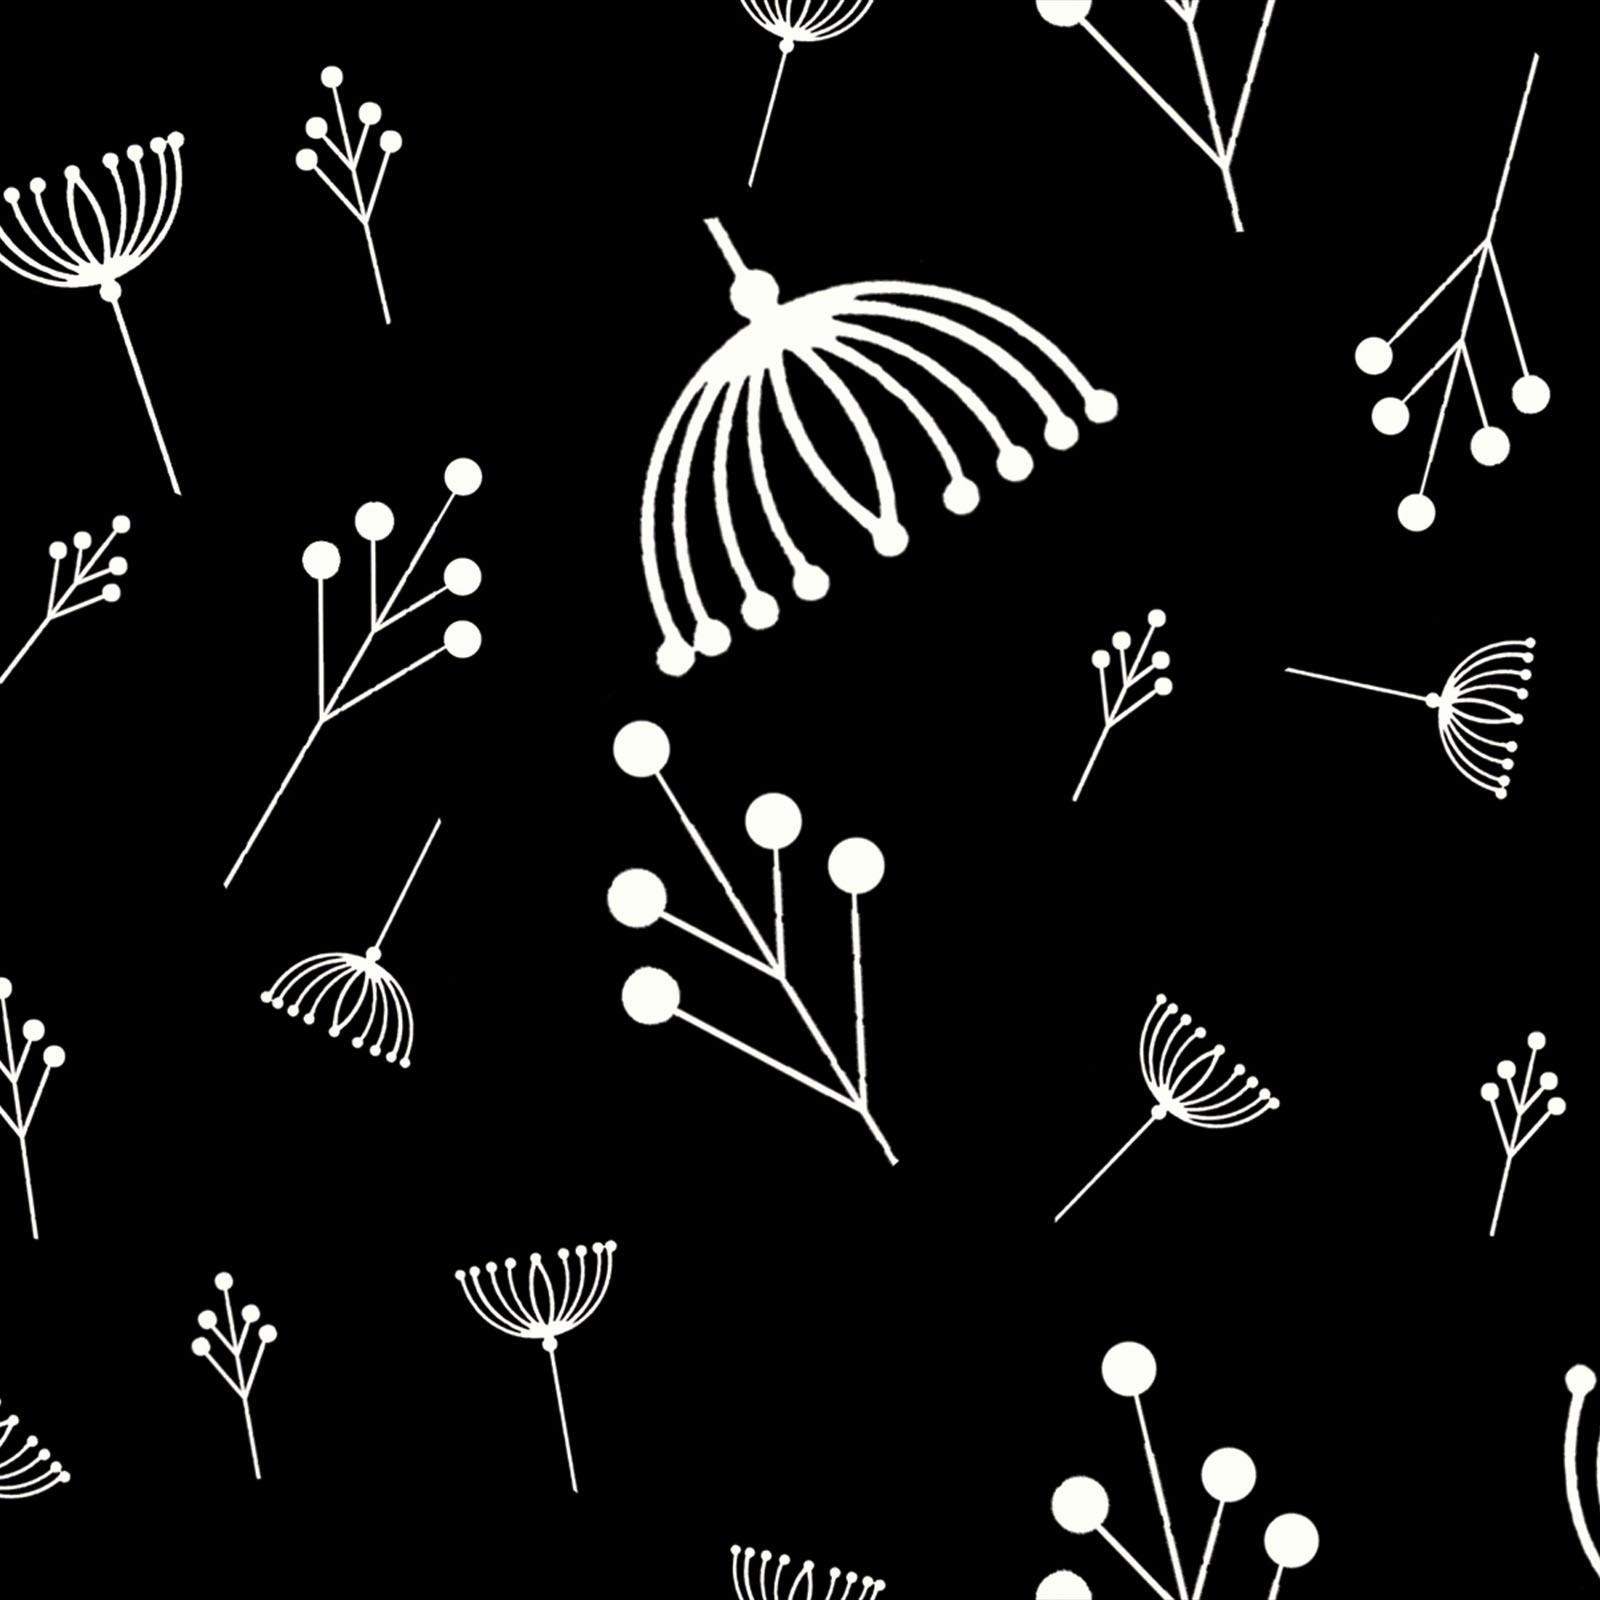 Twigs in Black (Poplin Fabric) by Charley Harper from the Best of Charley Harper collection for Birch #CH87Black